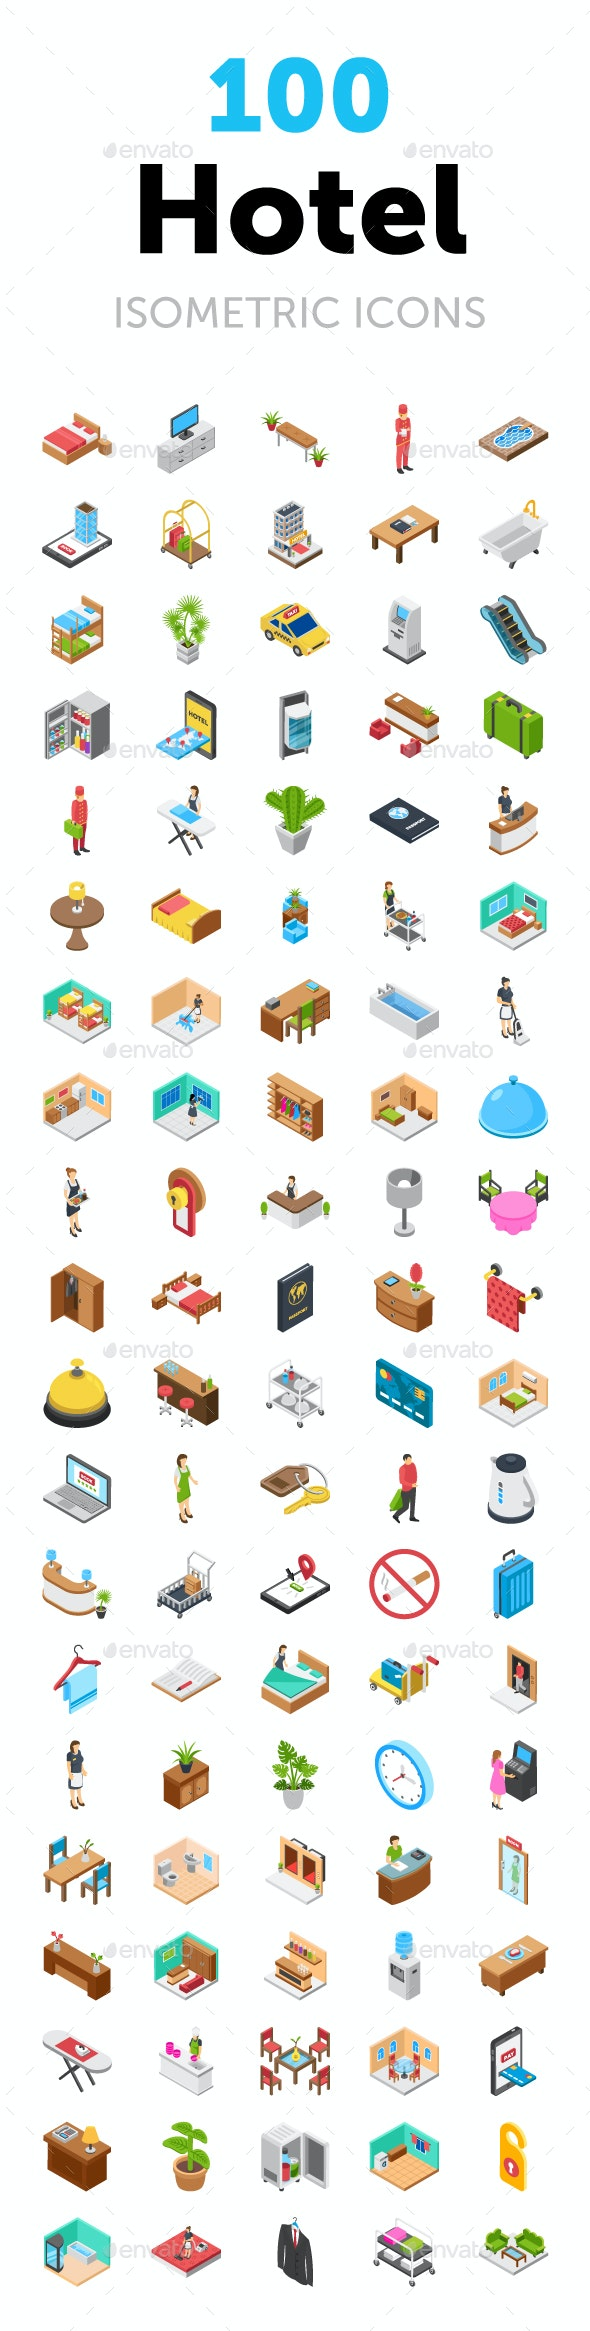 100 Hotel Isometric Icons Pack - Icons